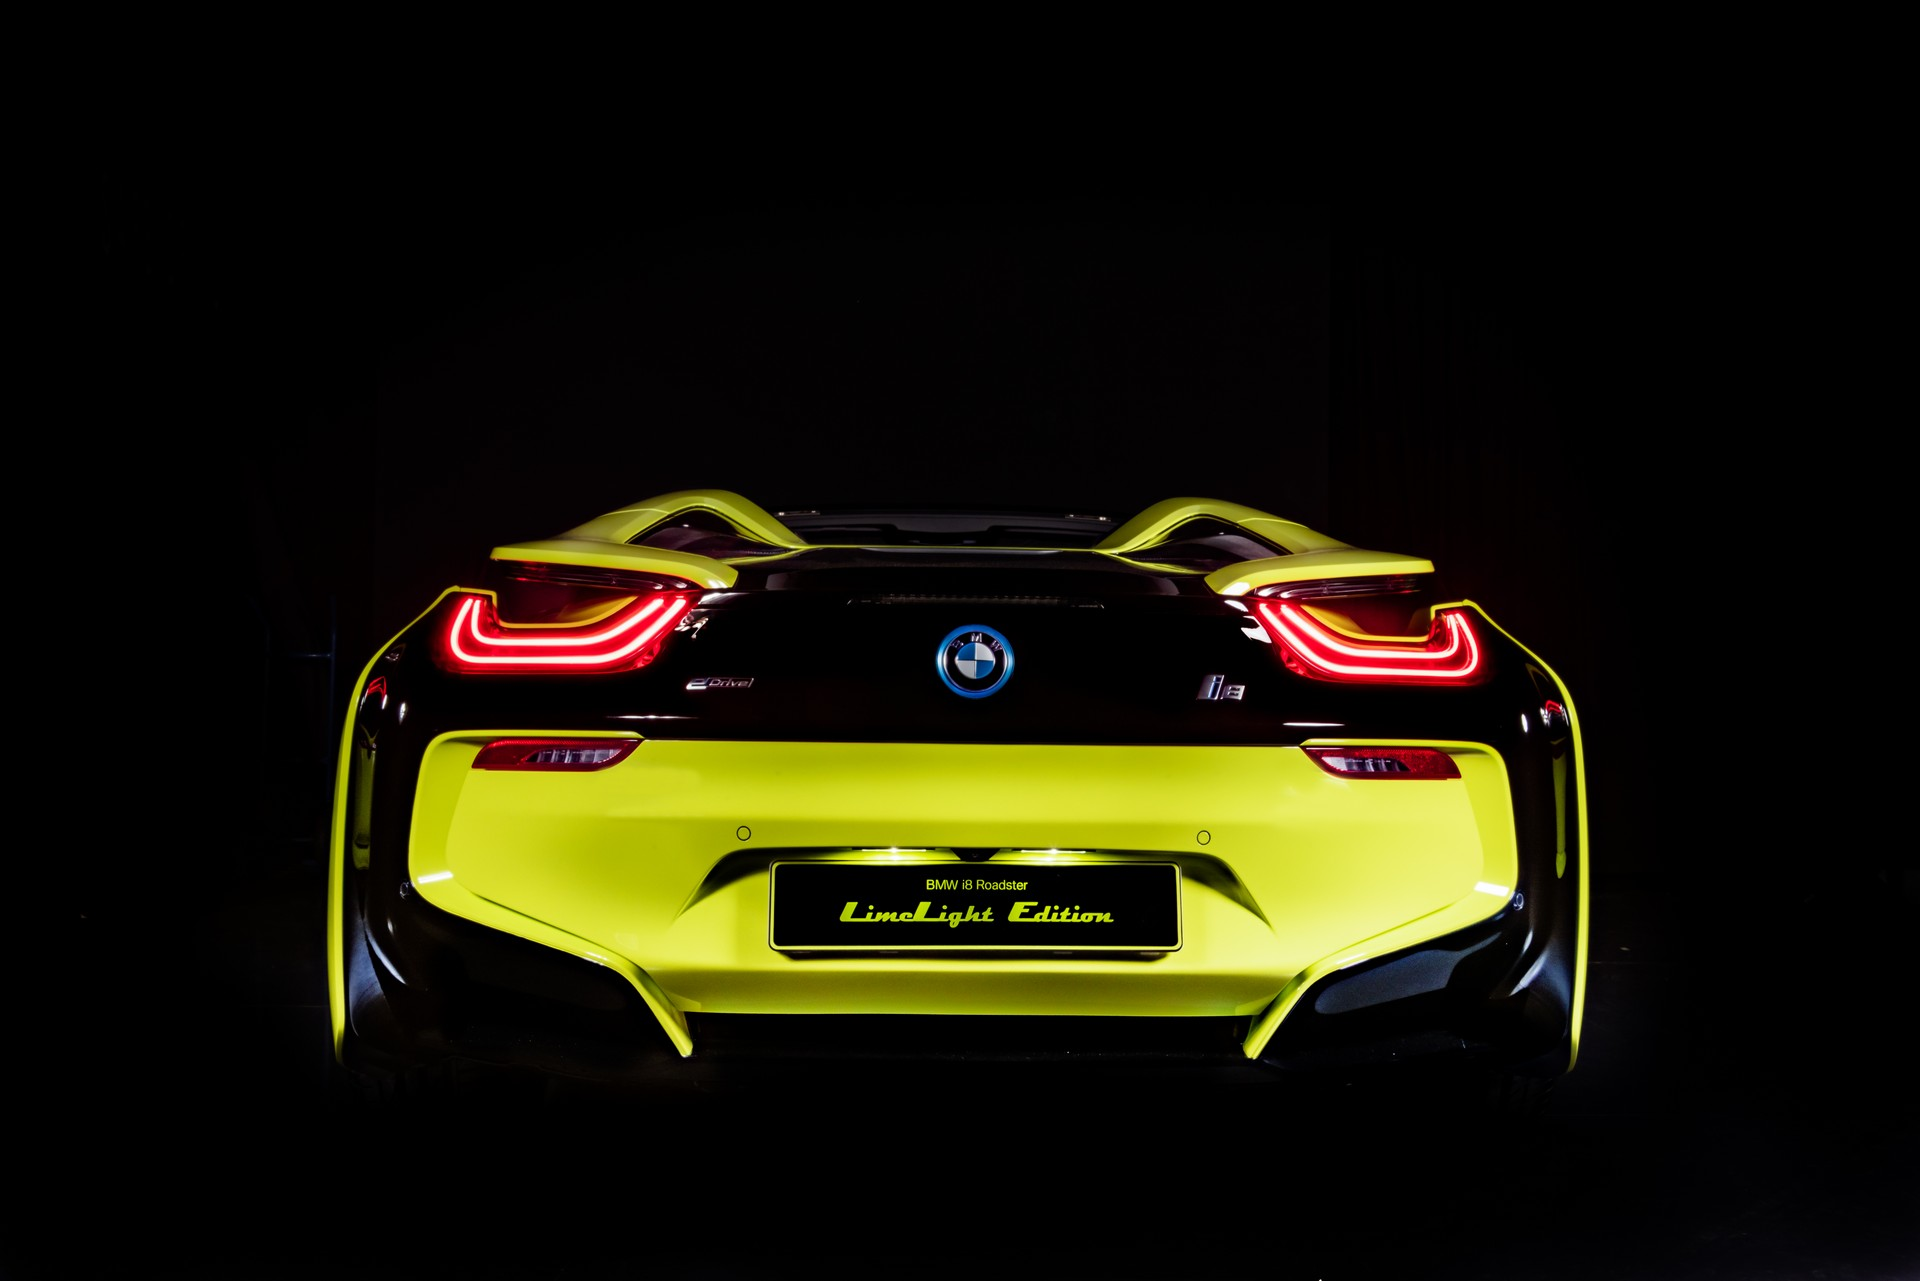 BMW-i8-Roadster-LimeLight-Edition-15